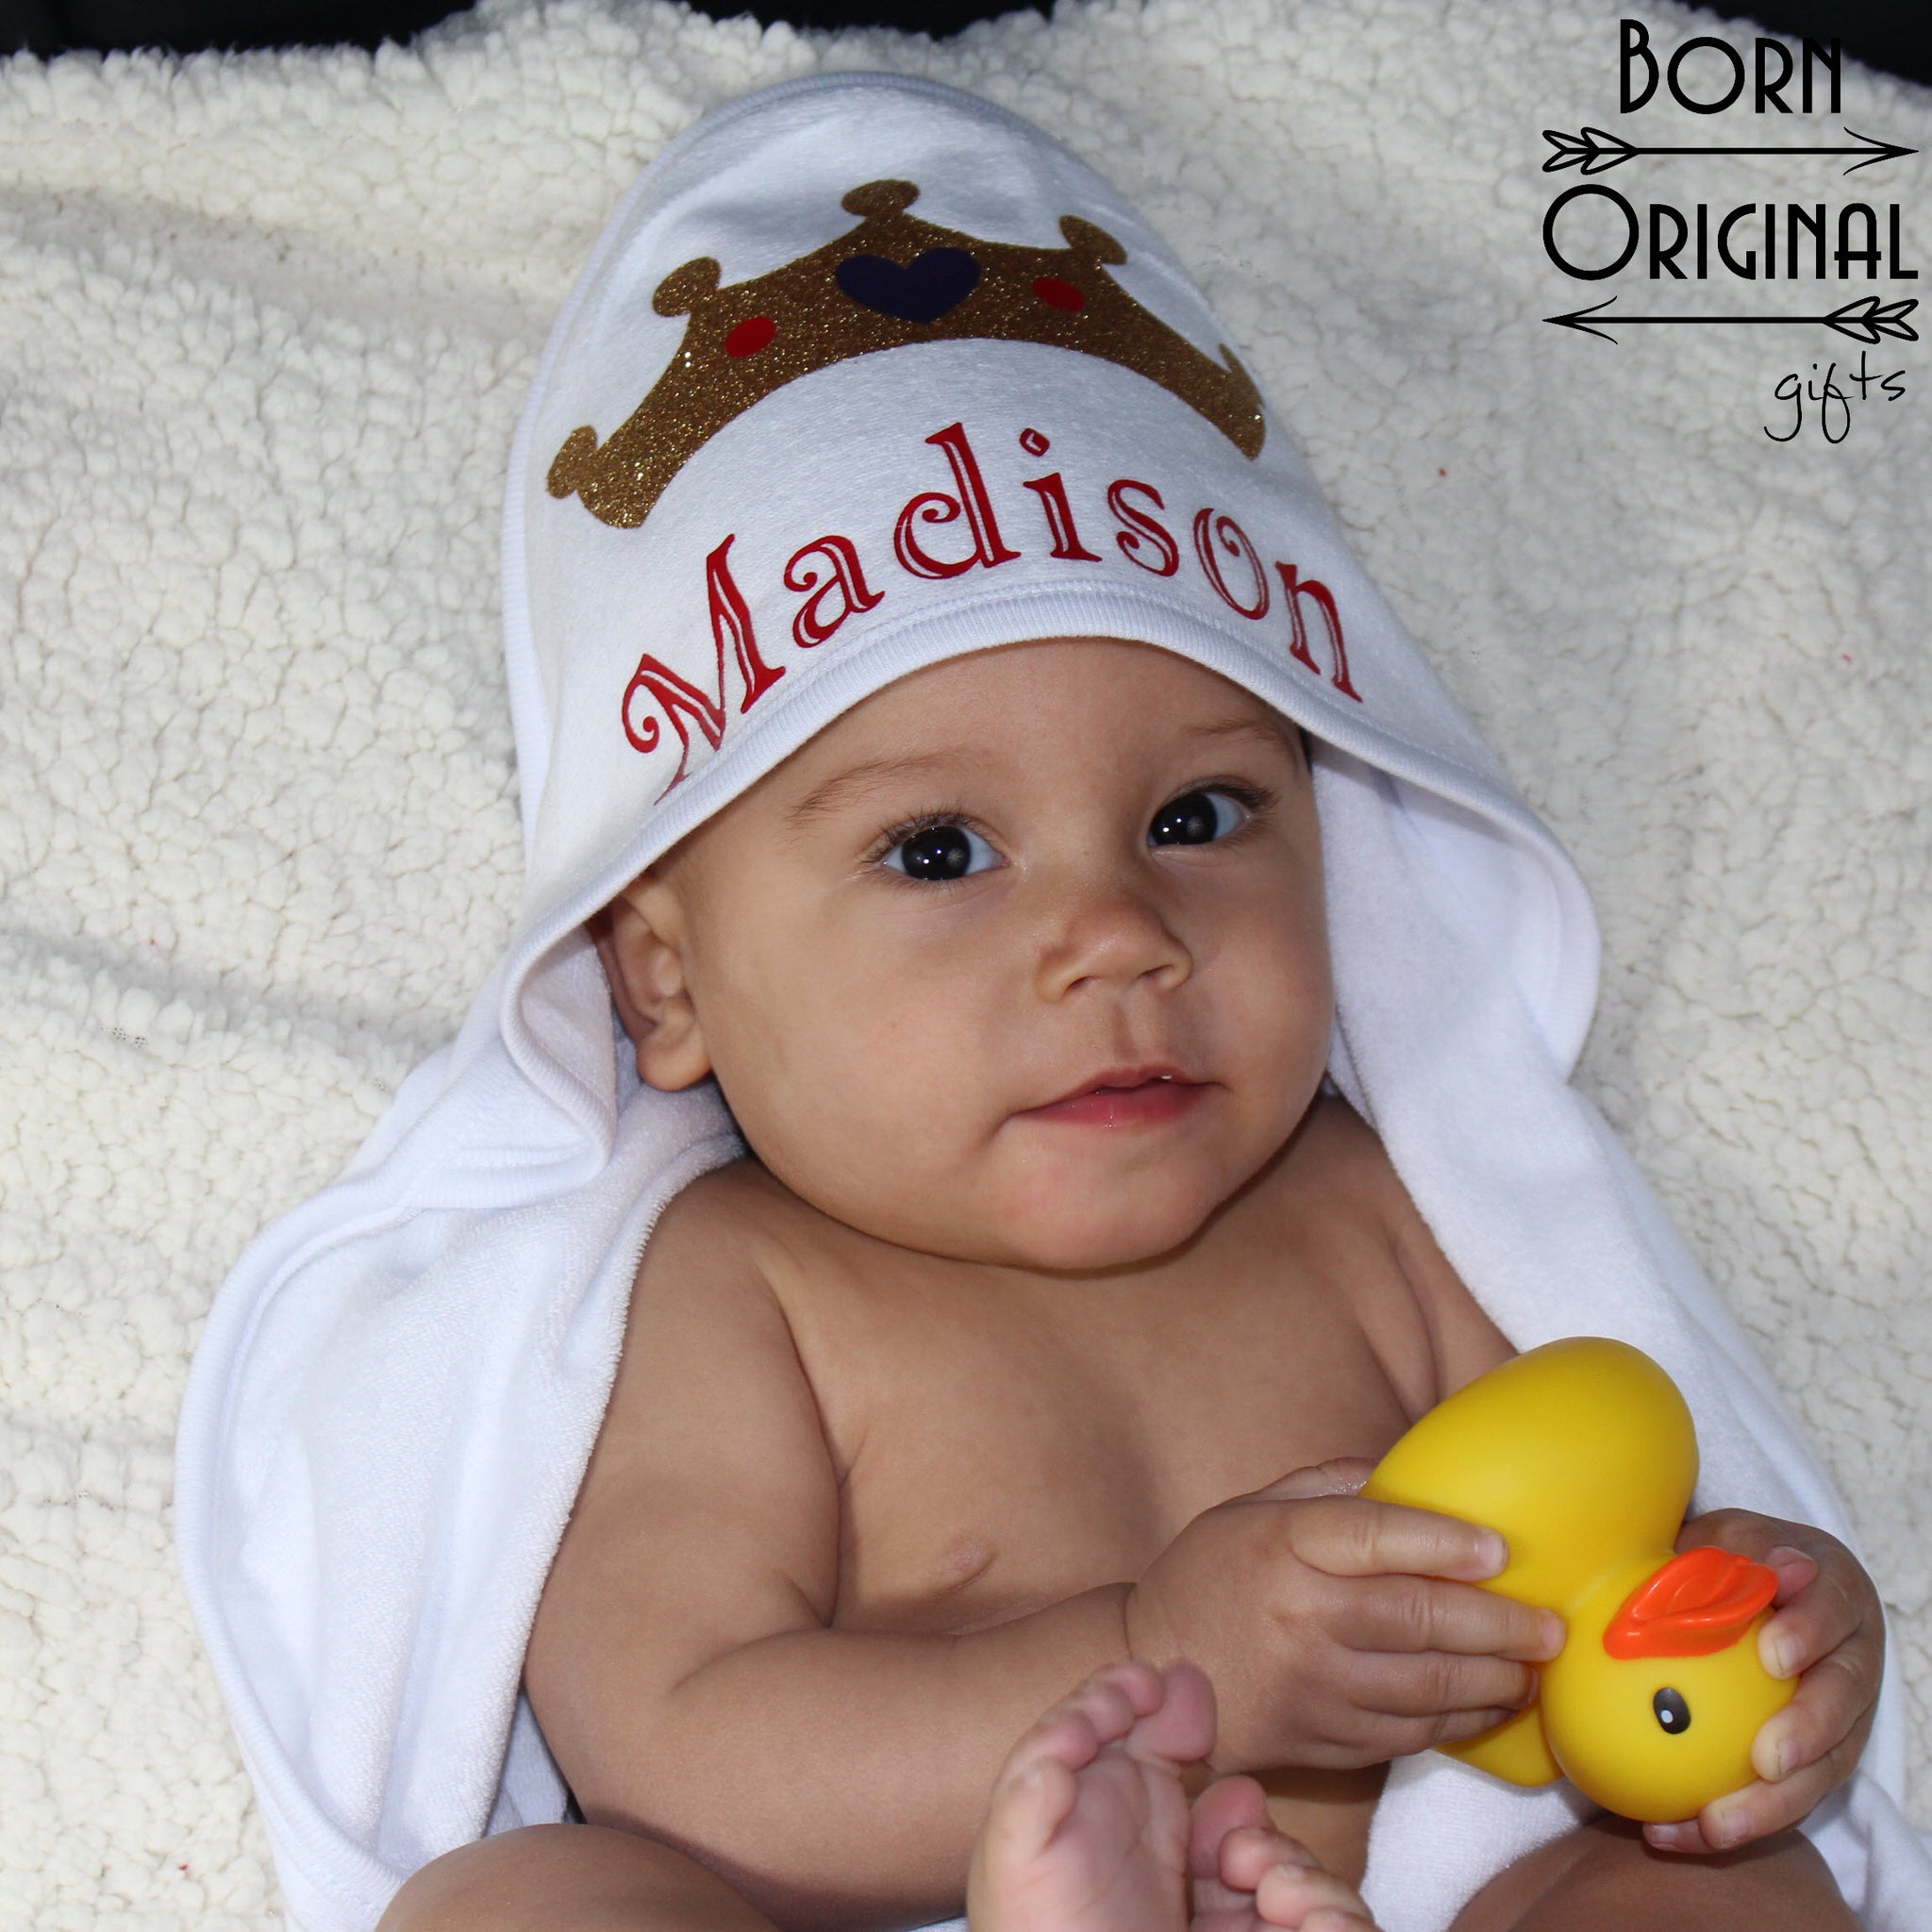 Infant Hooded Bath Towel Personalized With Name – Born Original Gifts